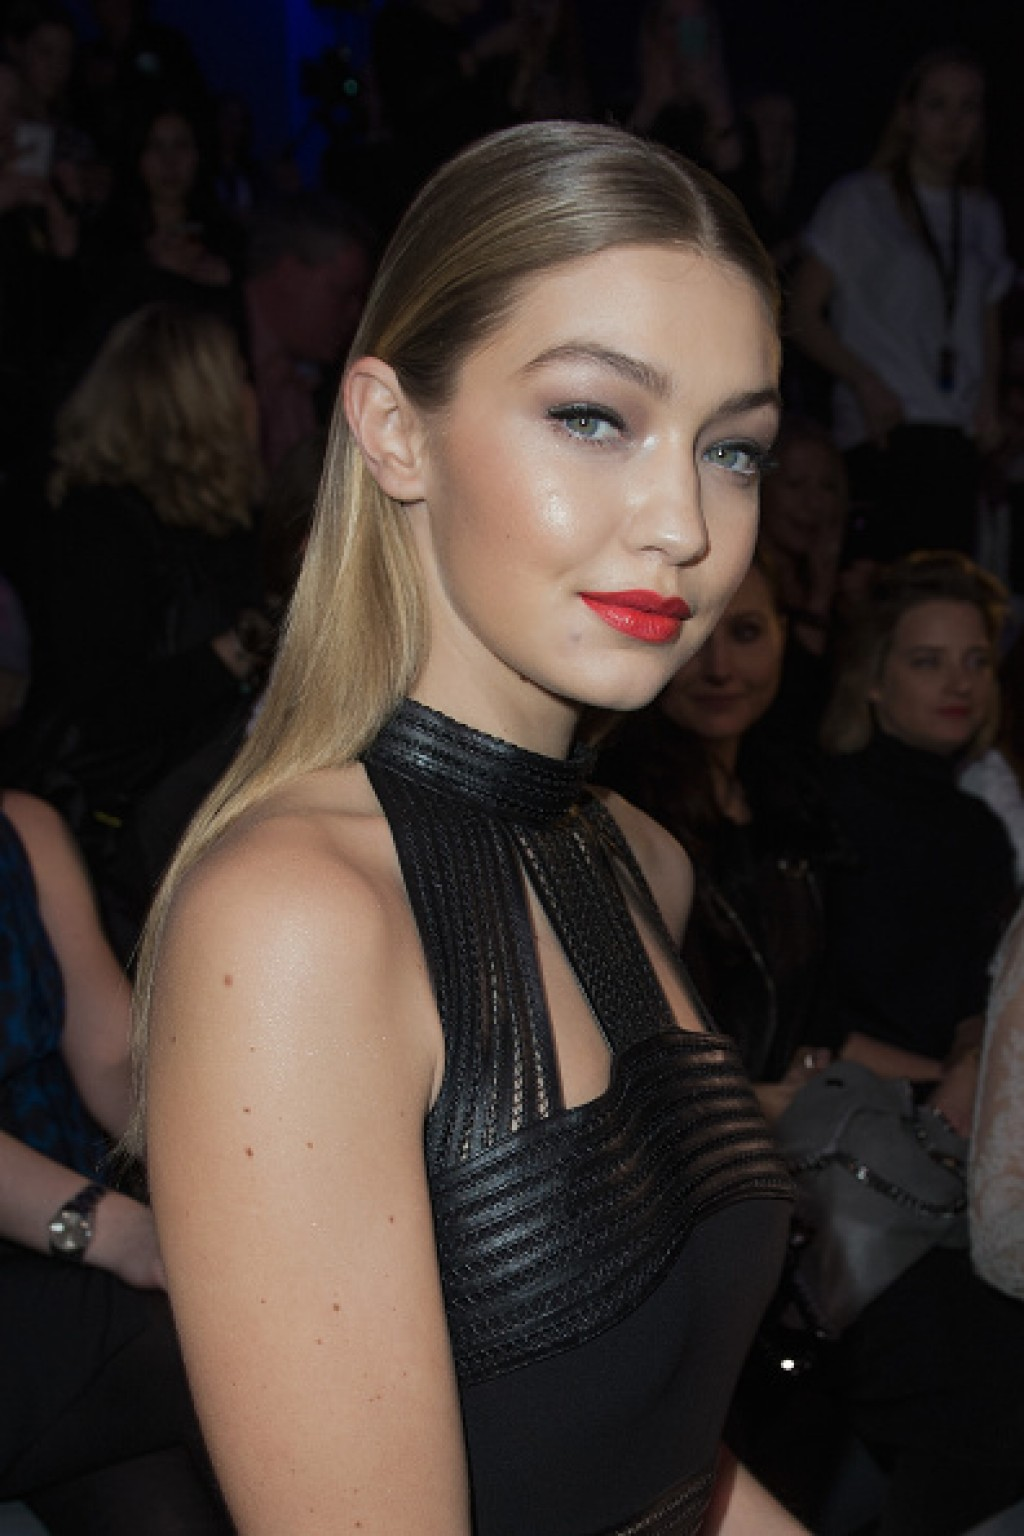 Maybelline-The-Power-Of-Colors-Make-Up-Runway-Event-gigi-hadid-makeup-1024x1536